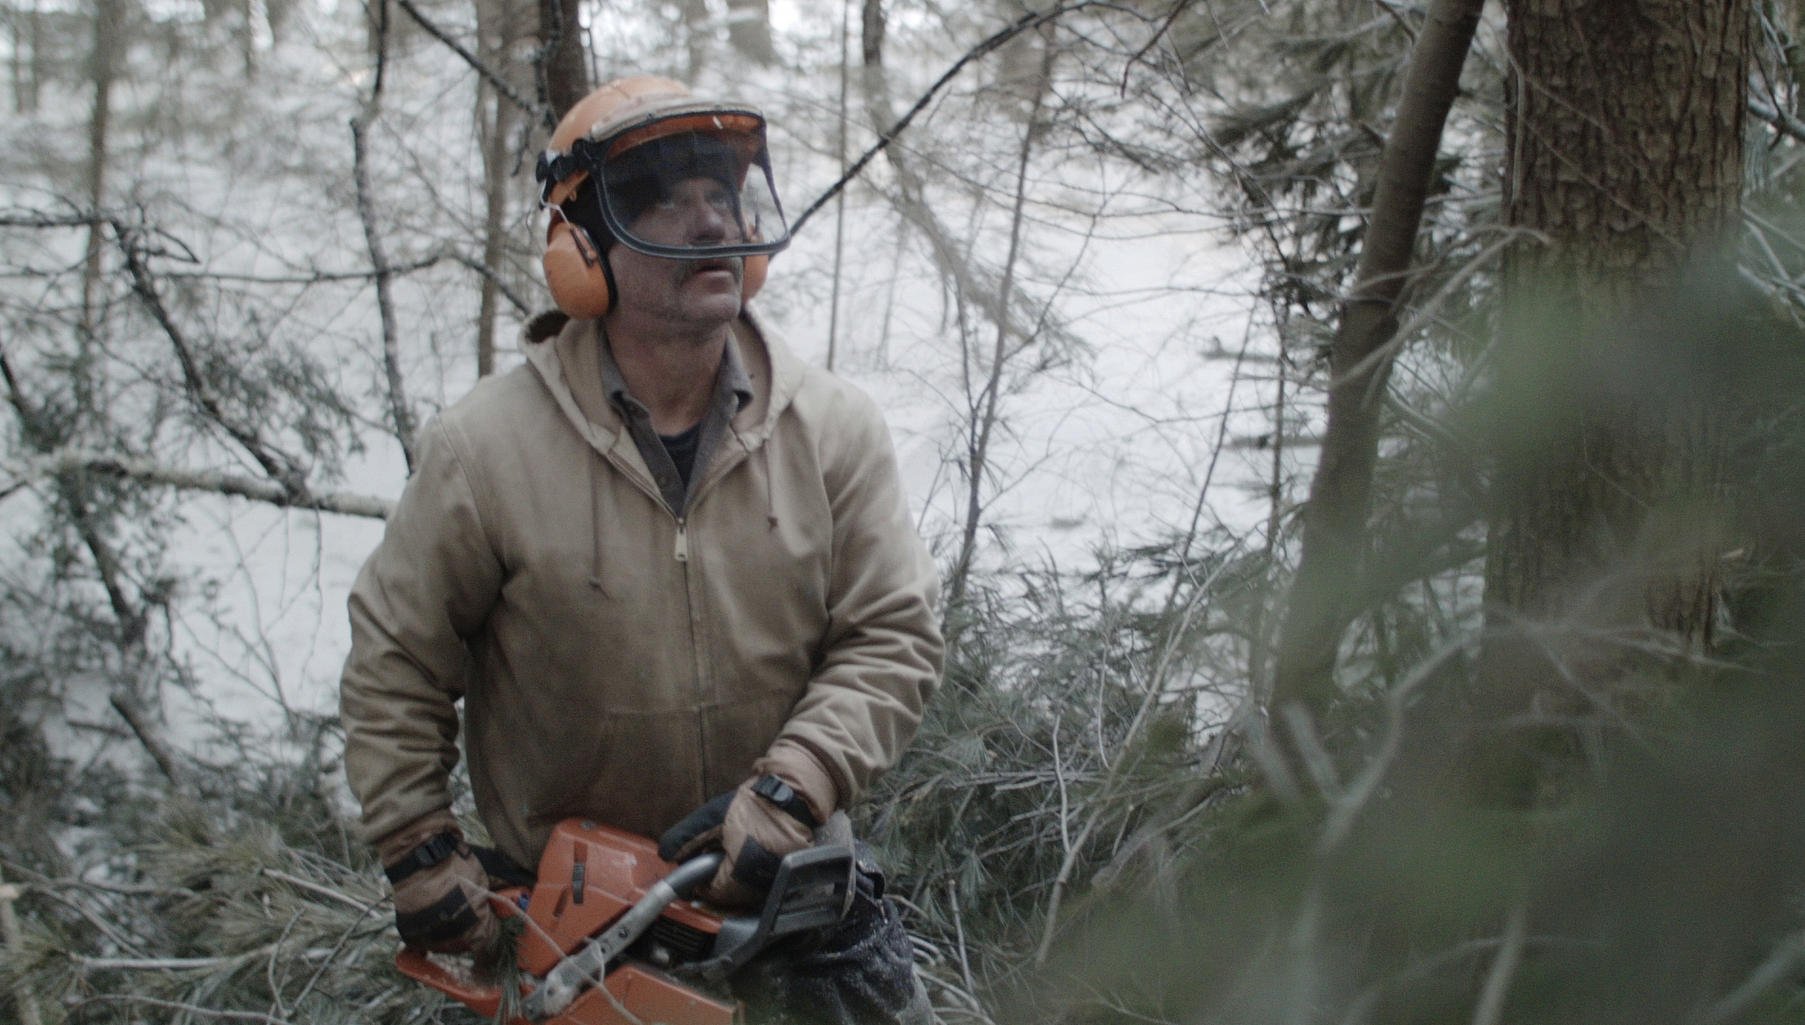 Bob and the Trees: From the Berkshires to Sundance